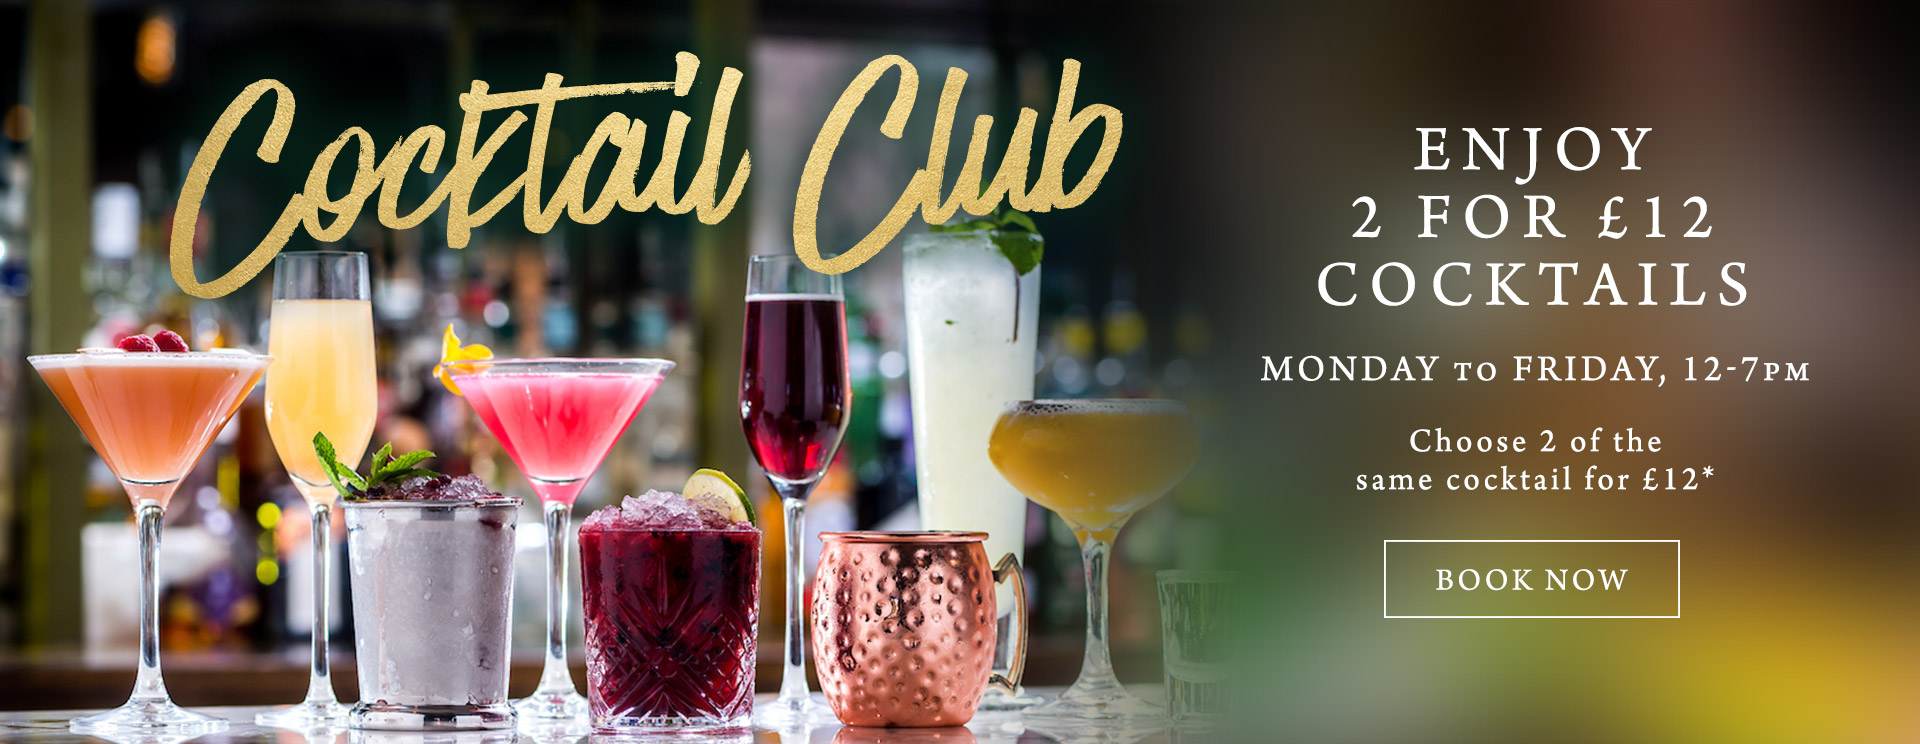 2 for £12 cocktails at The Seahorse